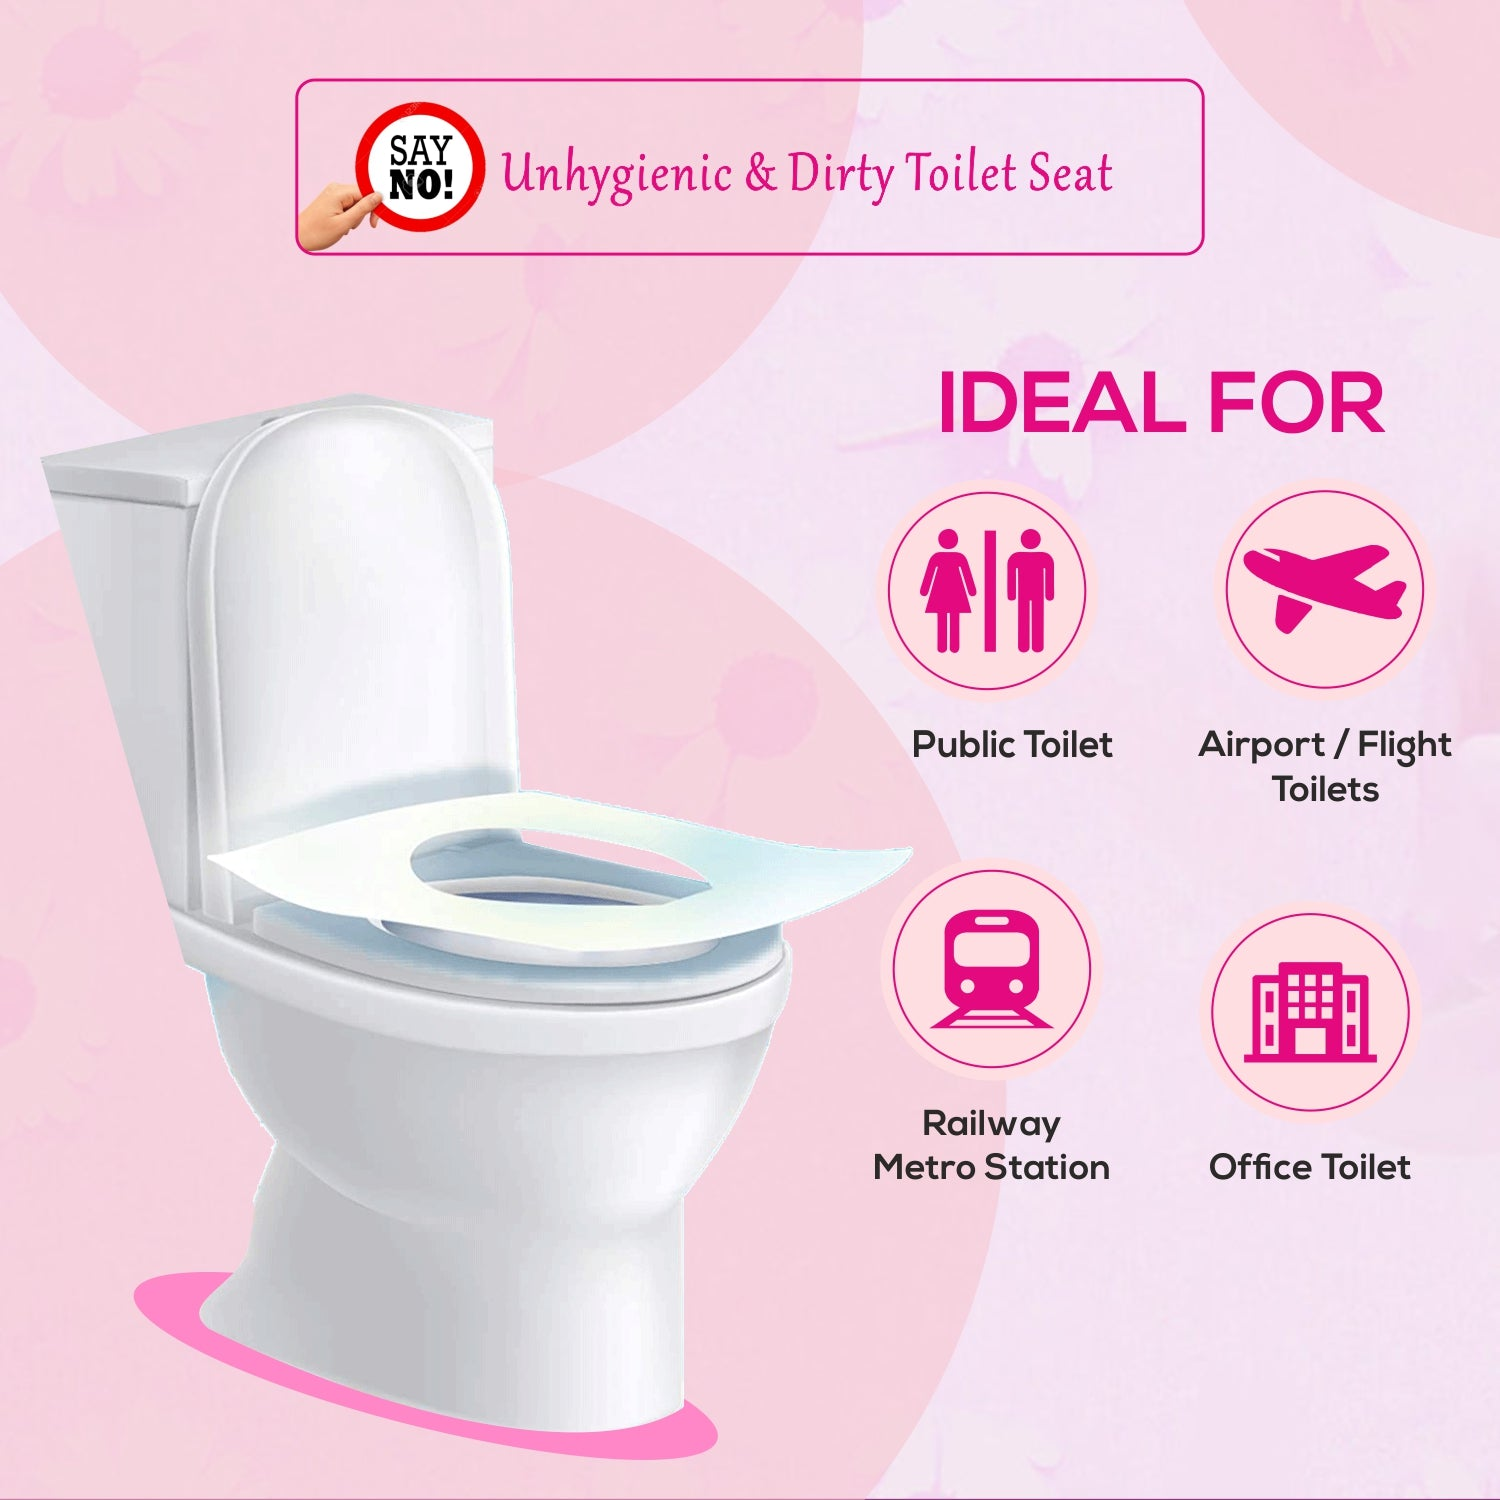 Paper toilet seat cover - For dirty toilet seats - Biodegradable